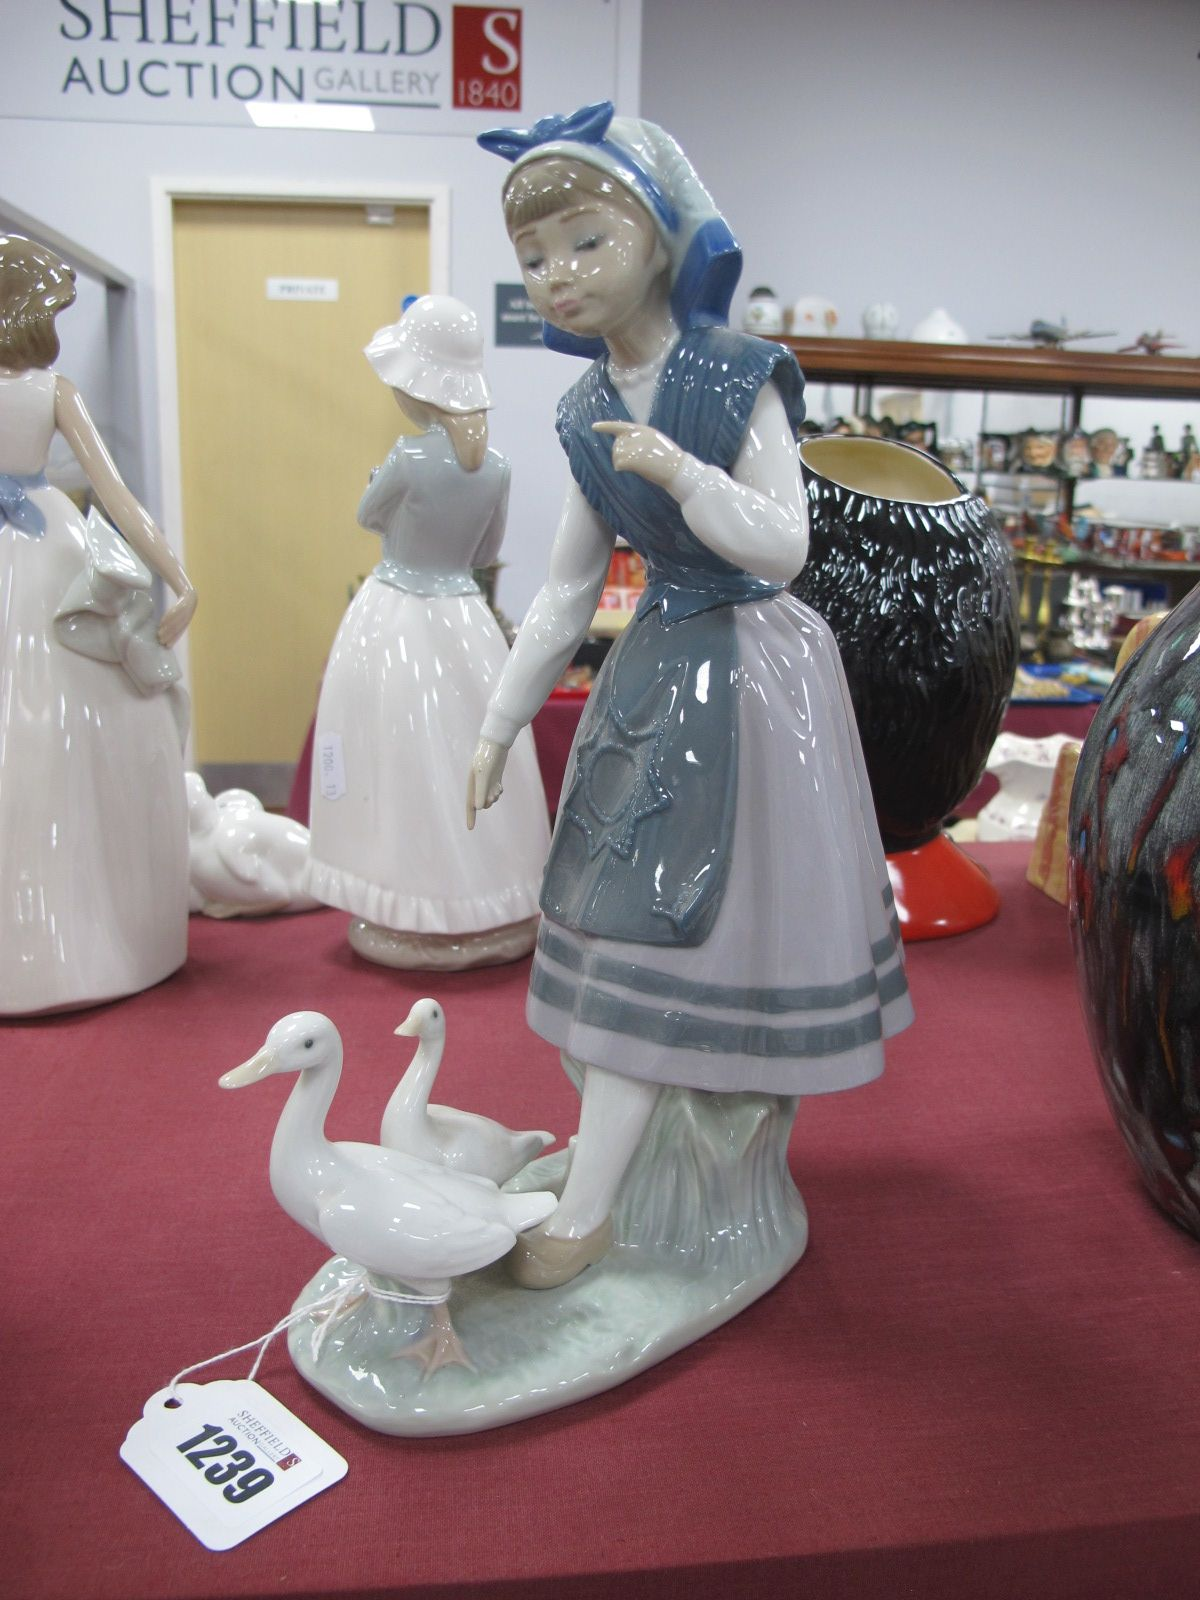 A Lladro Figurine of Girl Following Geese, stamped 5202, B-12D, 26.5cm high.